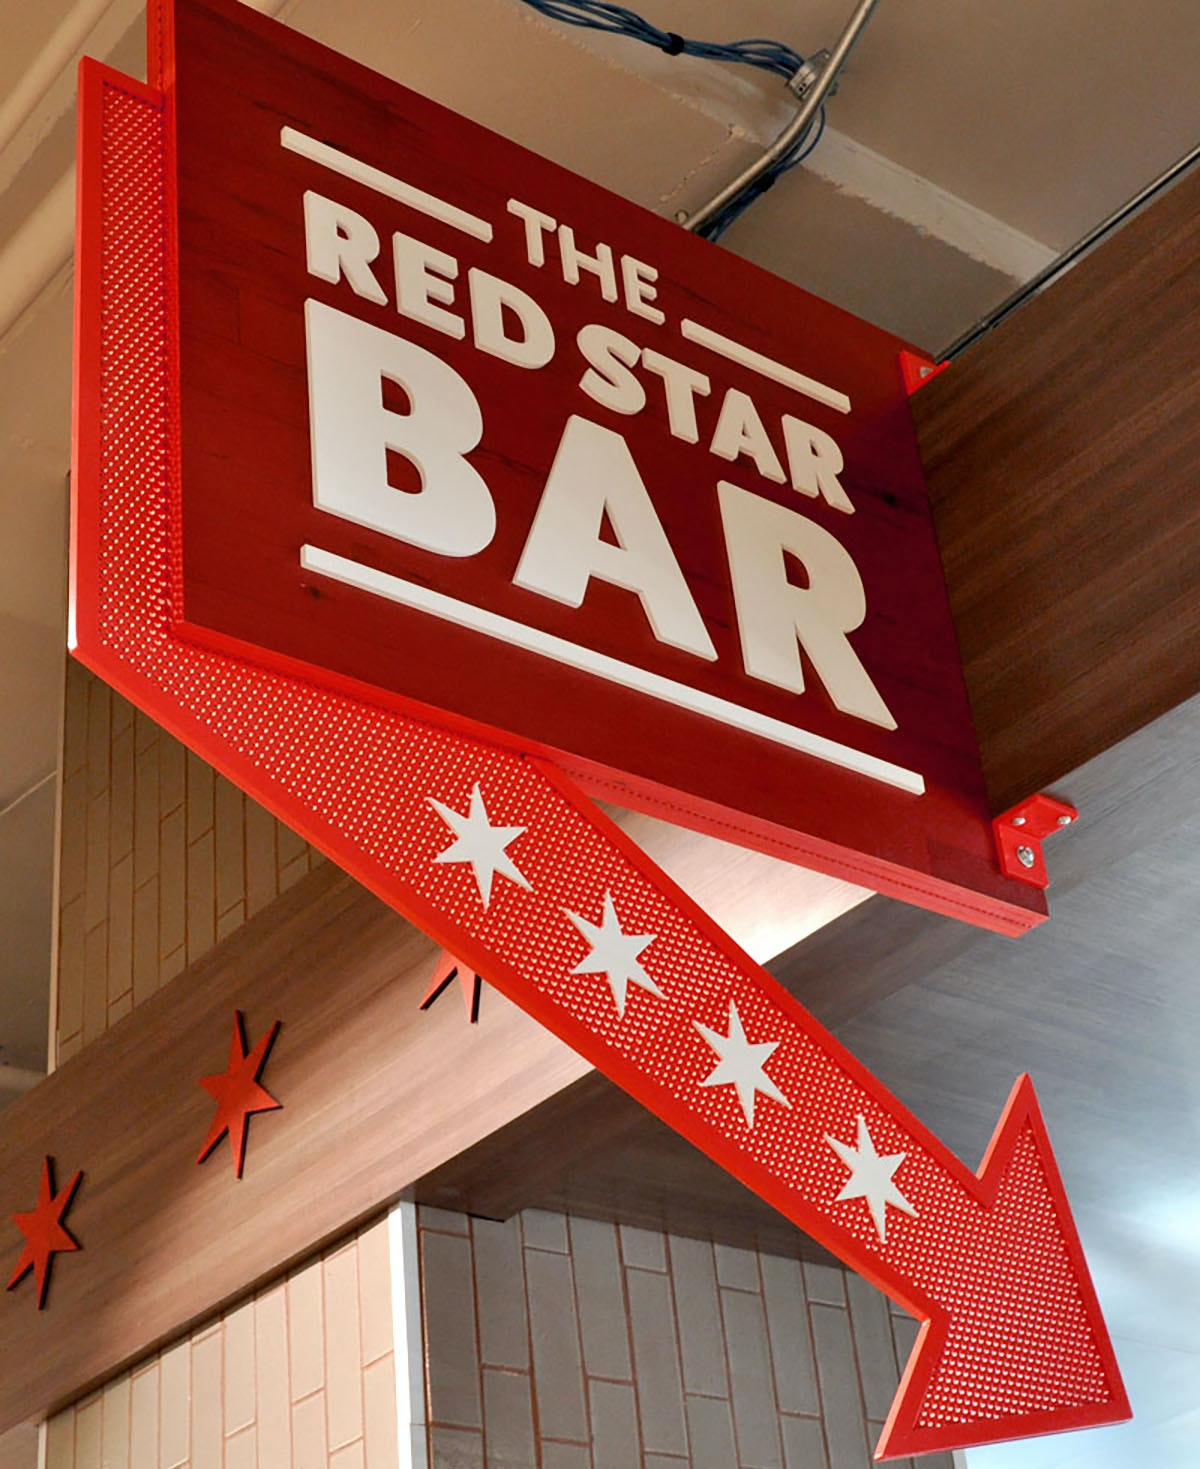 Red Star Bar